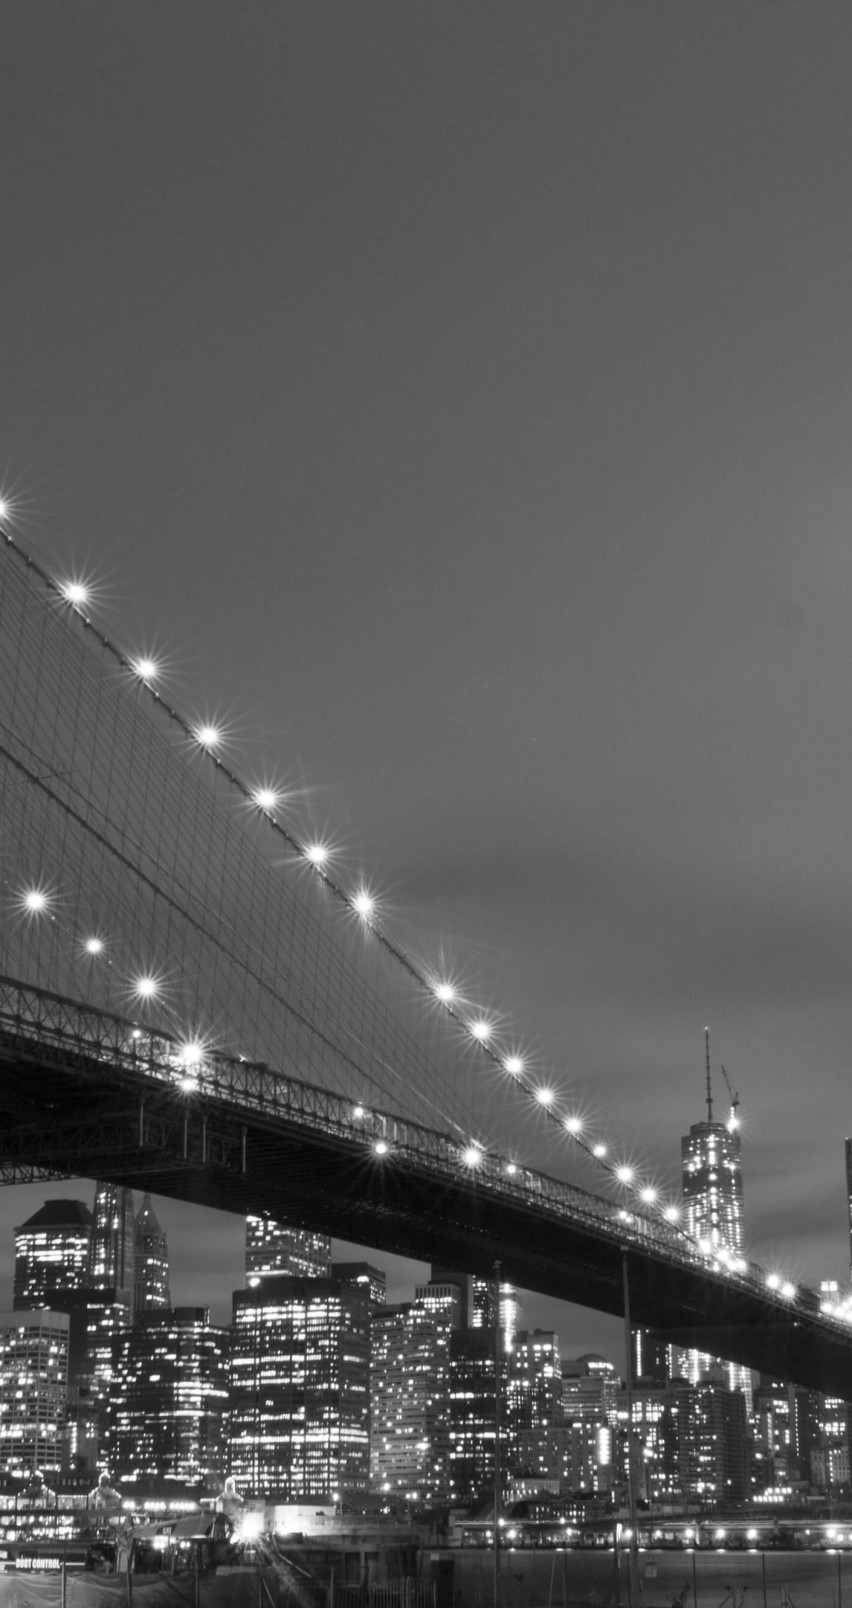 Brooklyn Bridge, New York City in Black & White Wallpaper for Apple iPhone 6 / 6s